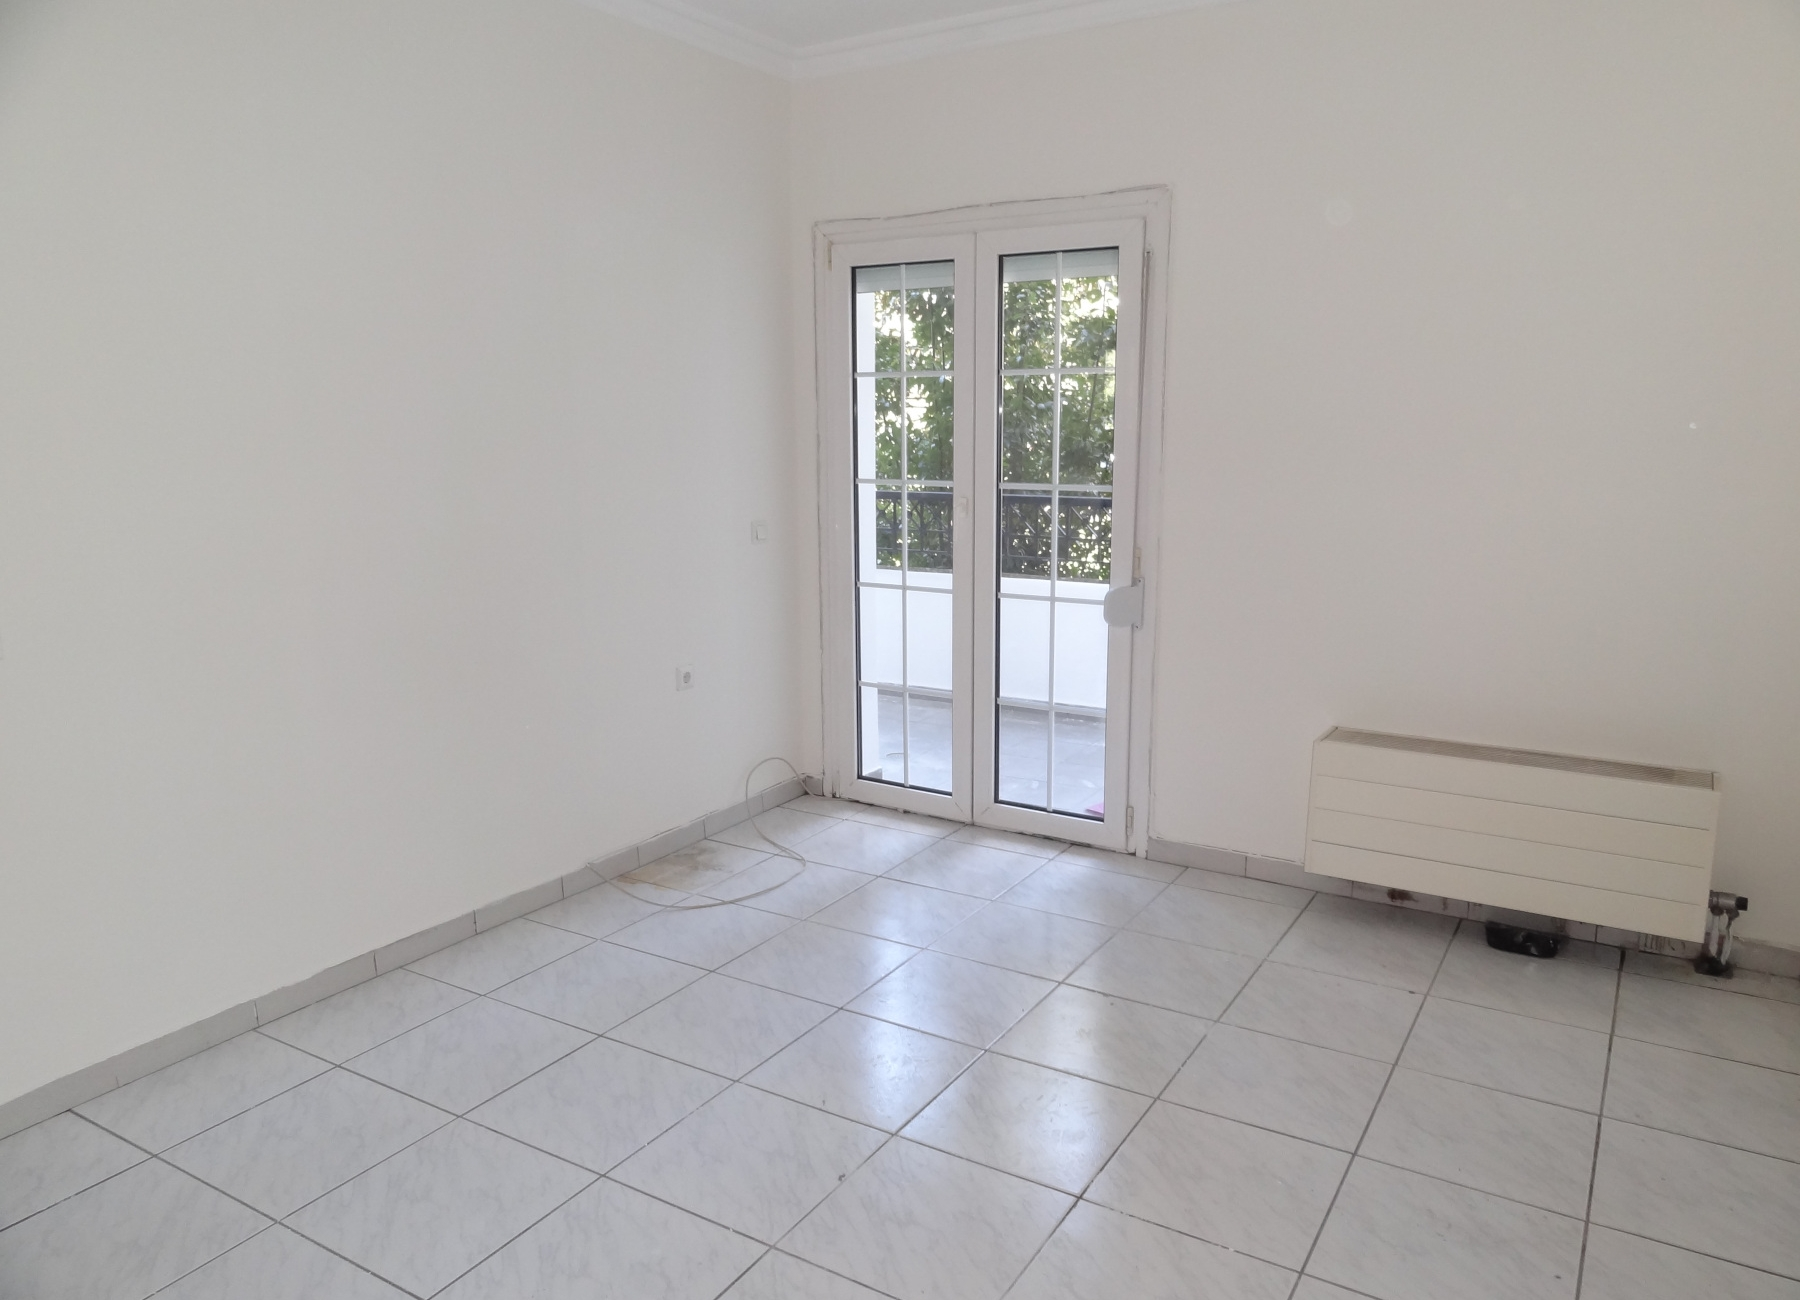 For rent comfortable 1 bedroom apartment of 55 sq.m. 1st floor near Homer Square in Ioannina